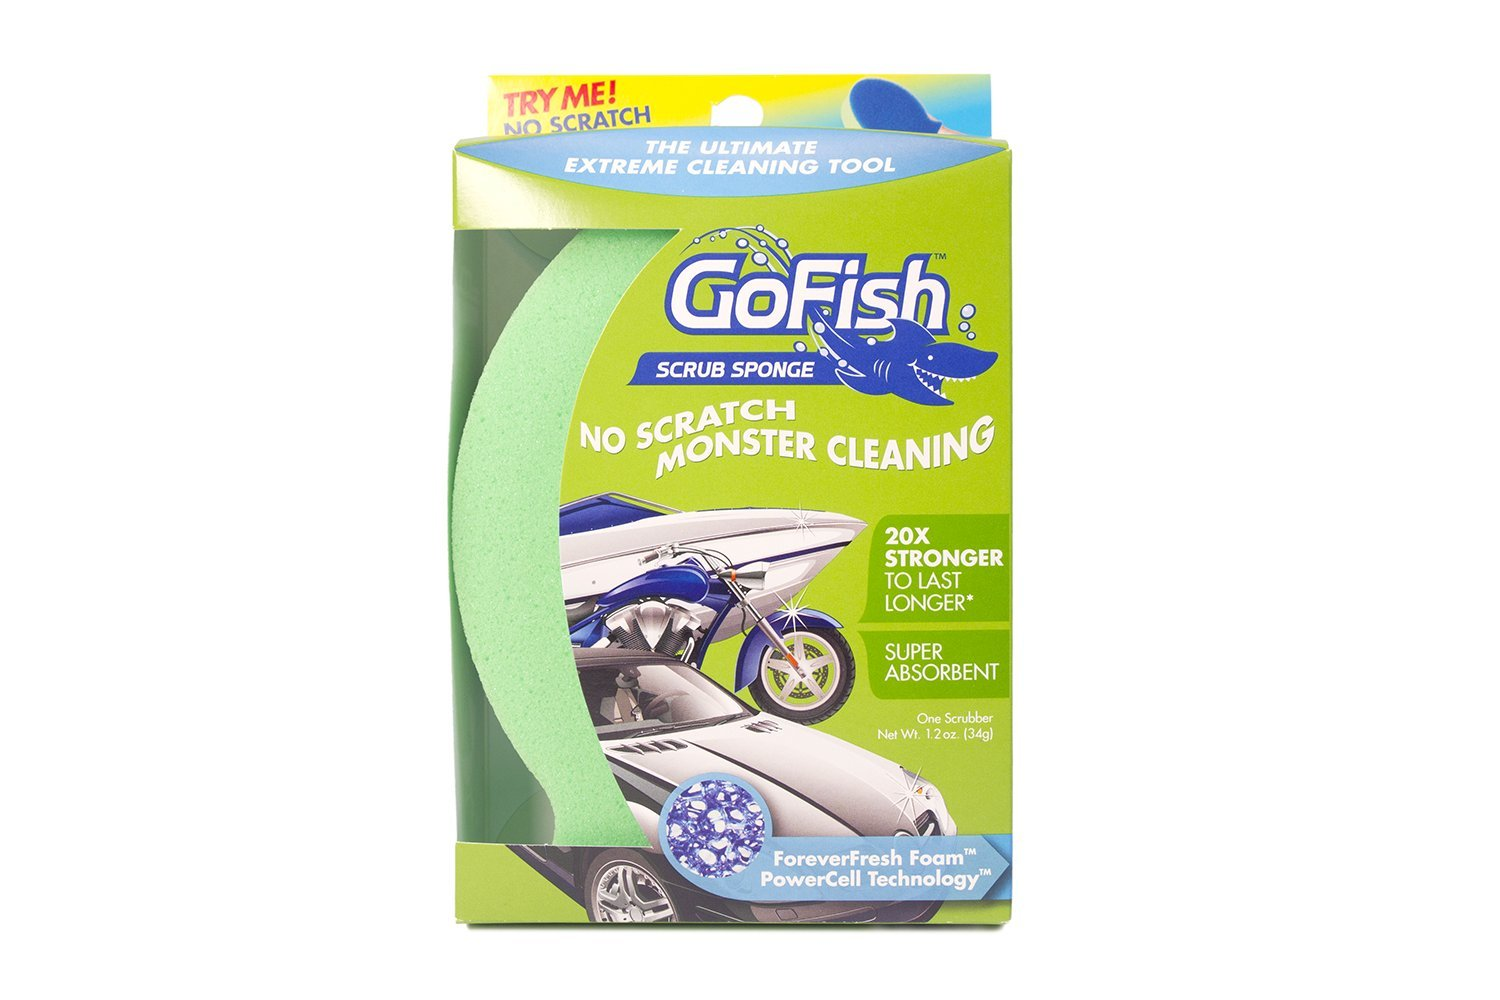 DishFish GoFish Scrub Sponge No Scratch Big Cleaning Sponge for Cars, ATVs, Wheels and More (Single)